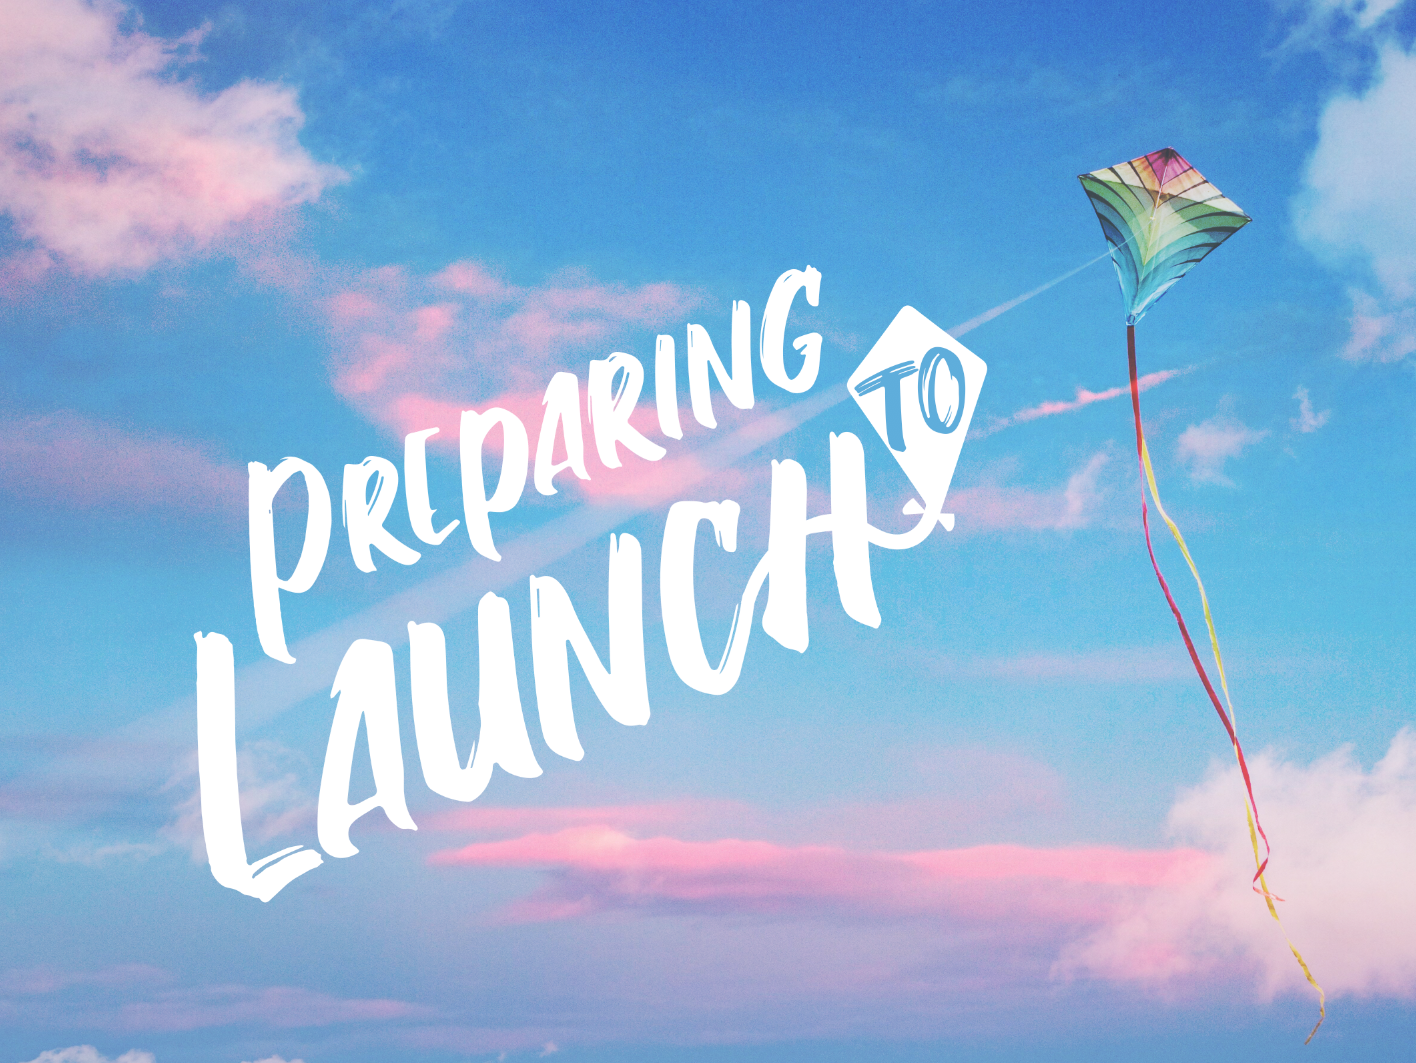 Preparing to Launch - Church Series marker font branding sky launch kit series church